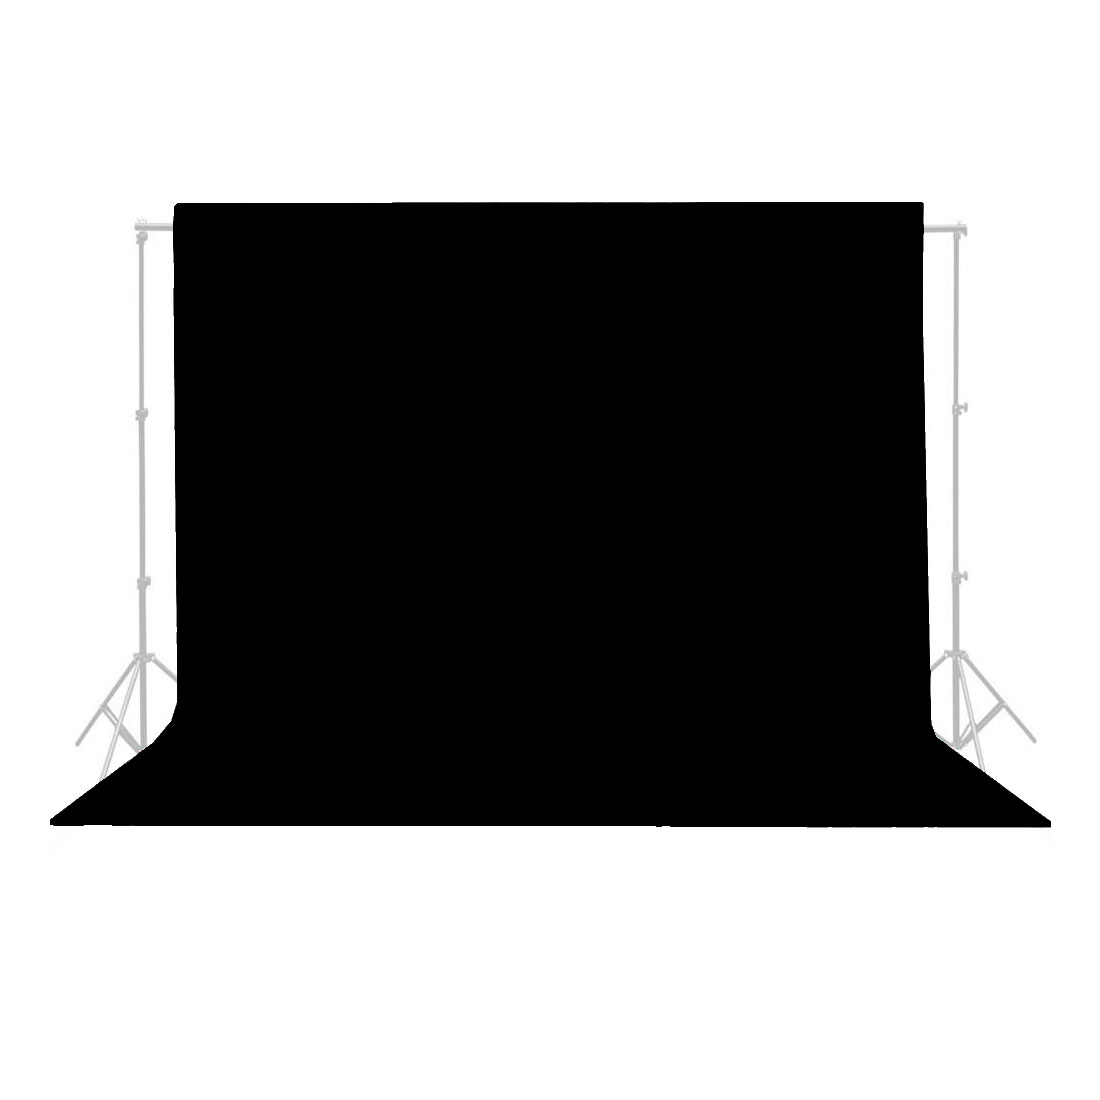 5Ft x 10Ft Black Non-woven Fabric Photography Backdrop Background Cloth